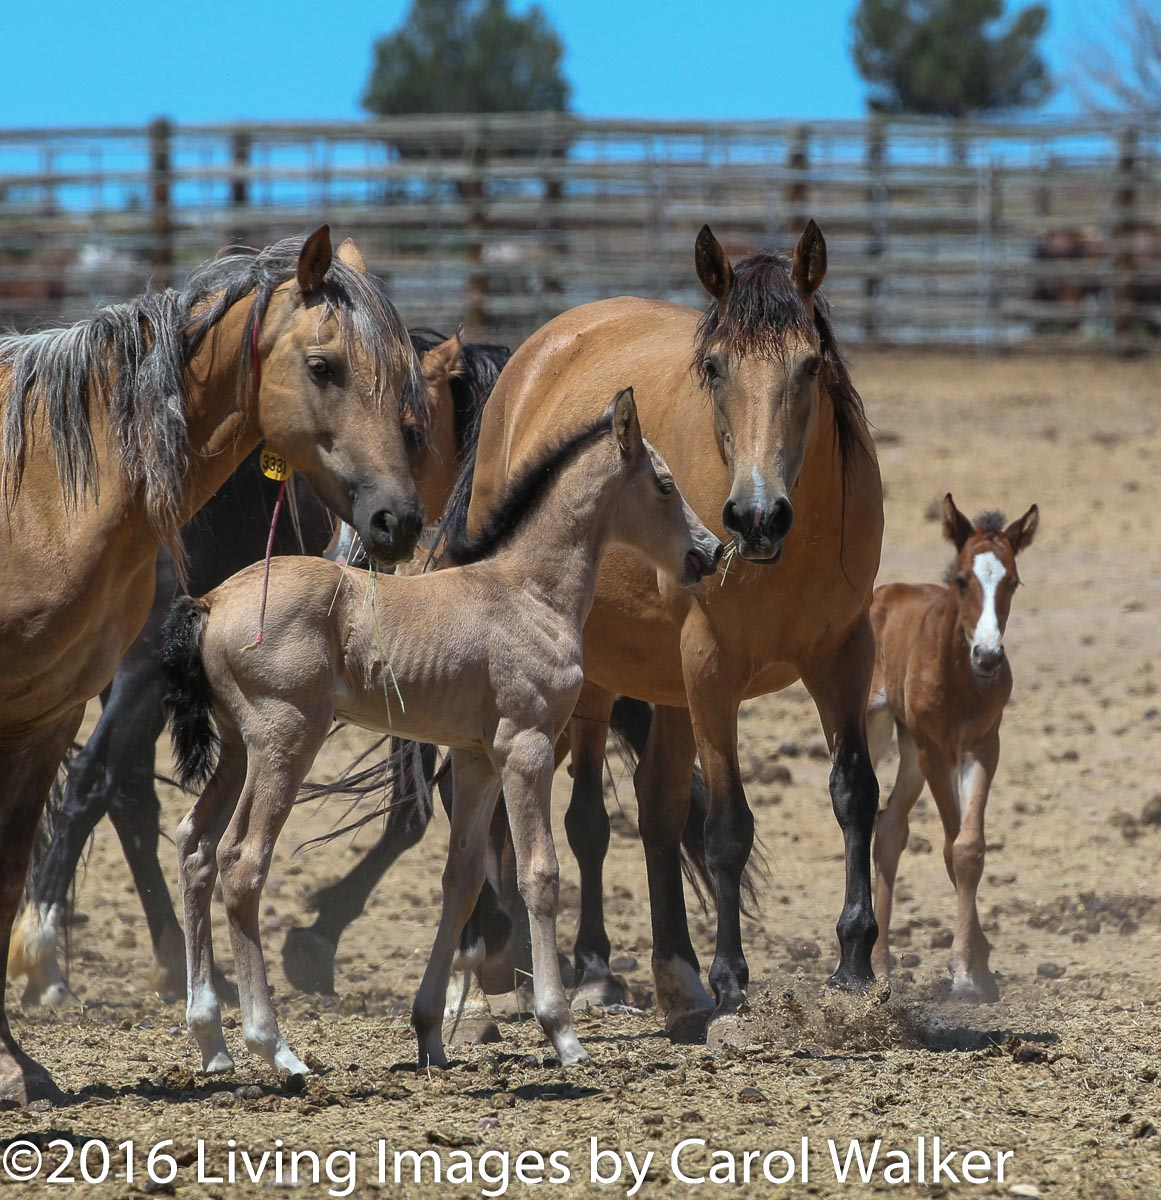 Mares and foals at the Hines facility